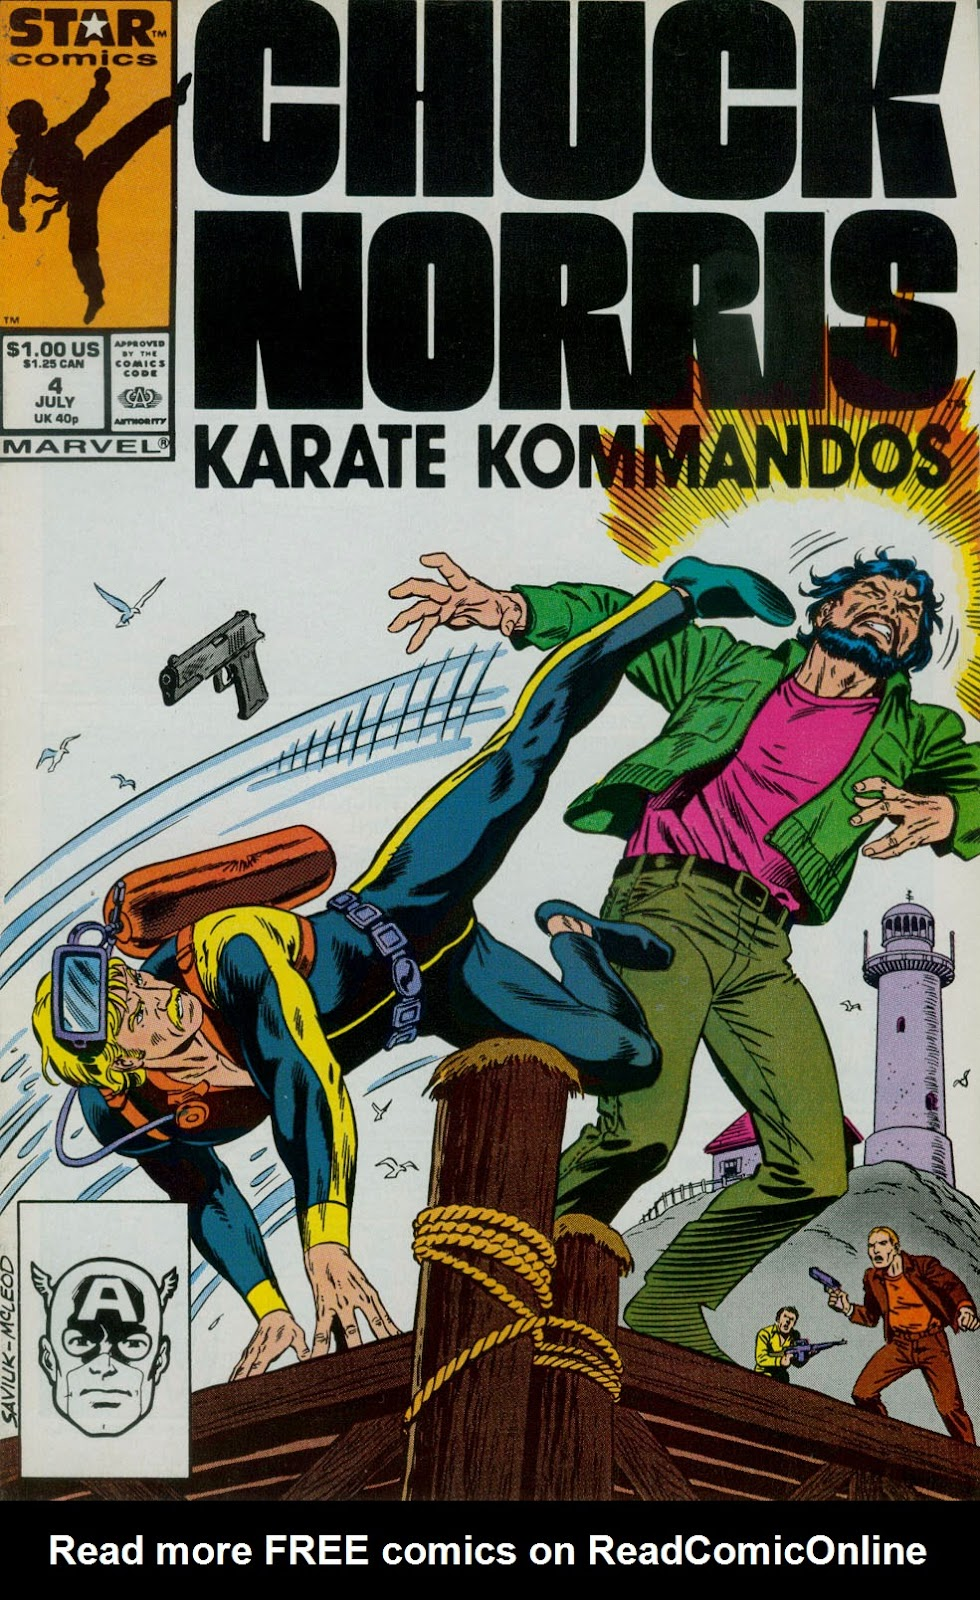 Chuck Norris and the Karate Kommandos 4 Page 1